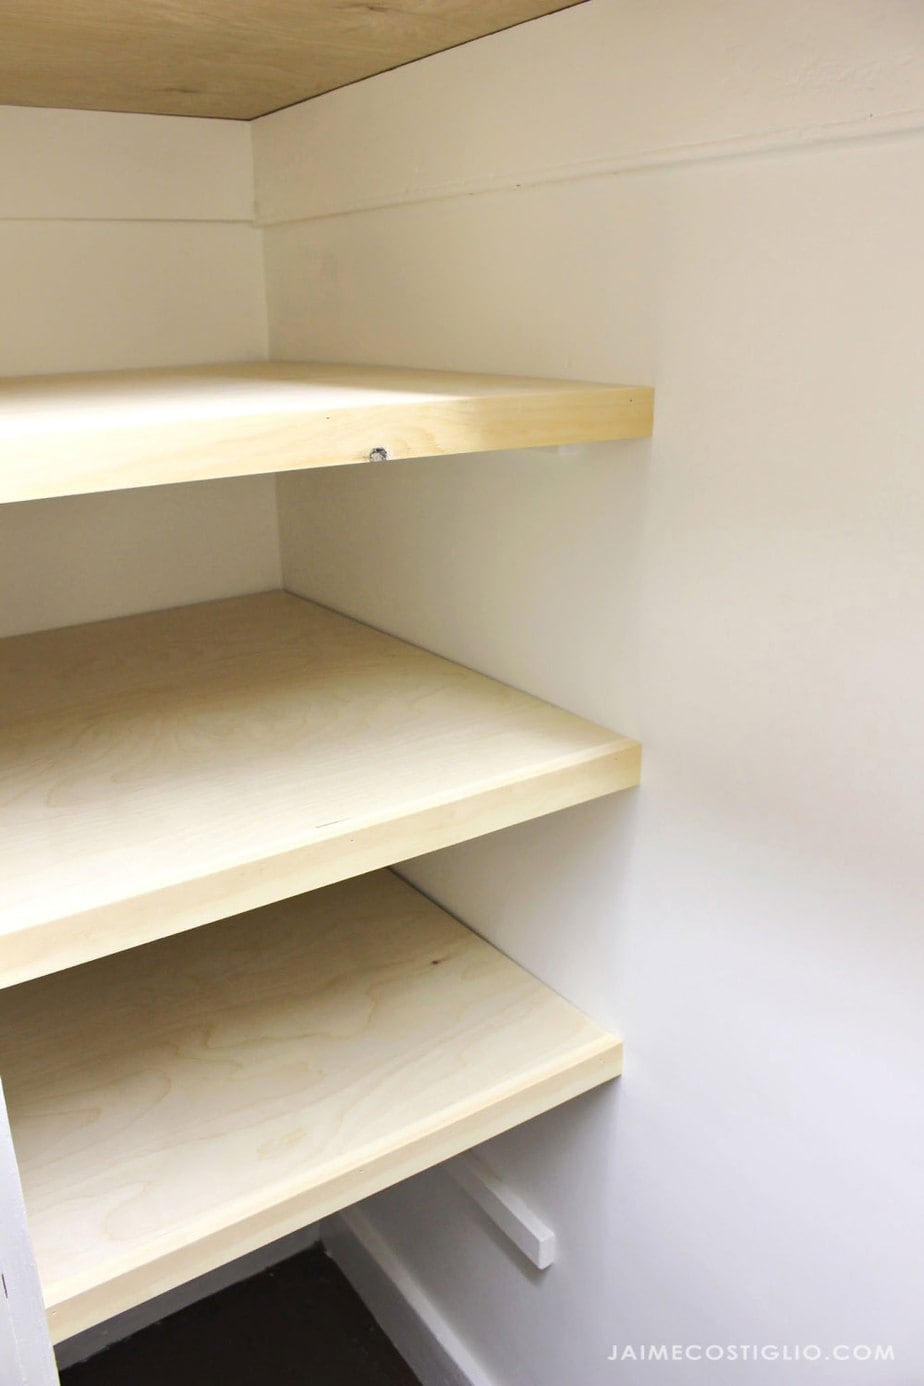 A Diy Tutorial To Build Shelves In Hall Linen Closet Tackle That Messy Disorganized E With Fresh Paint And New